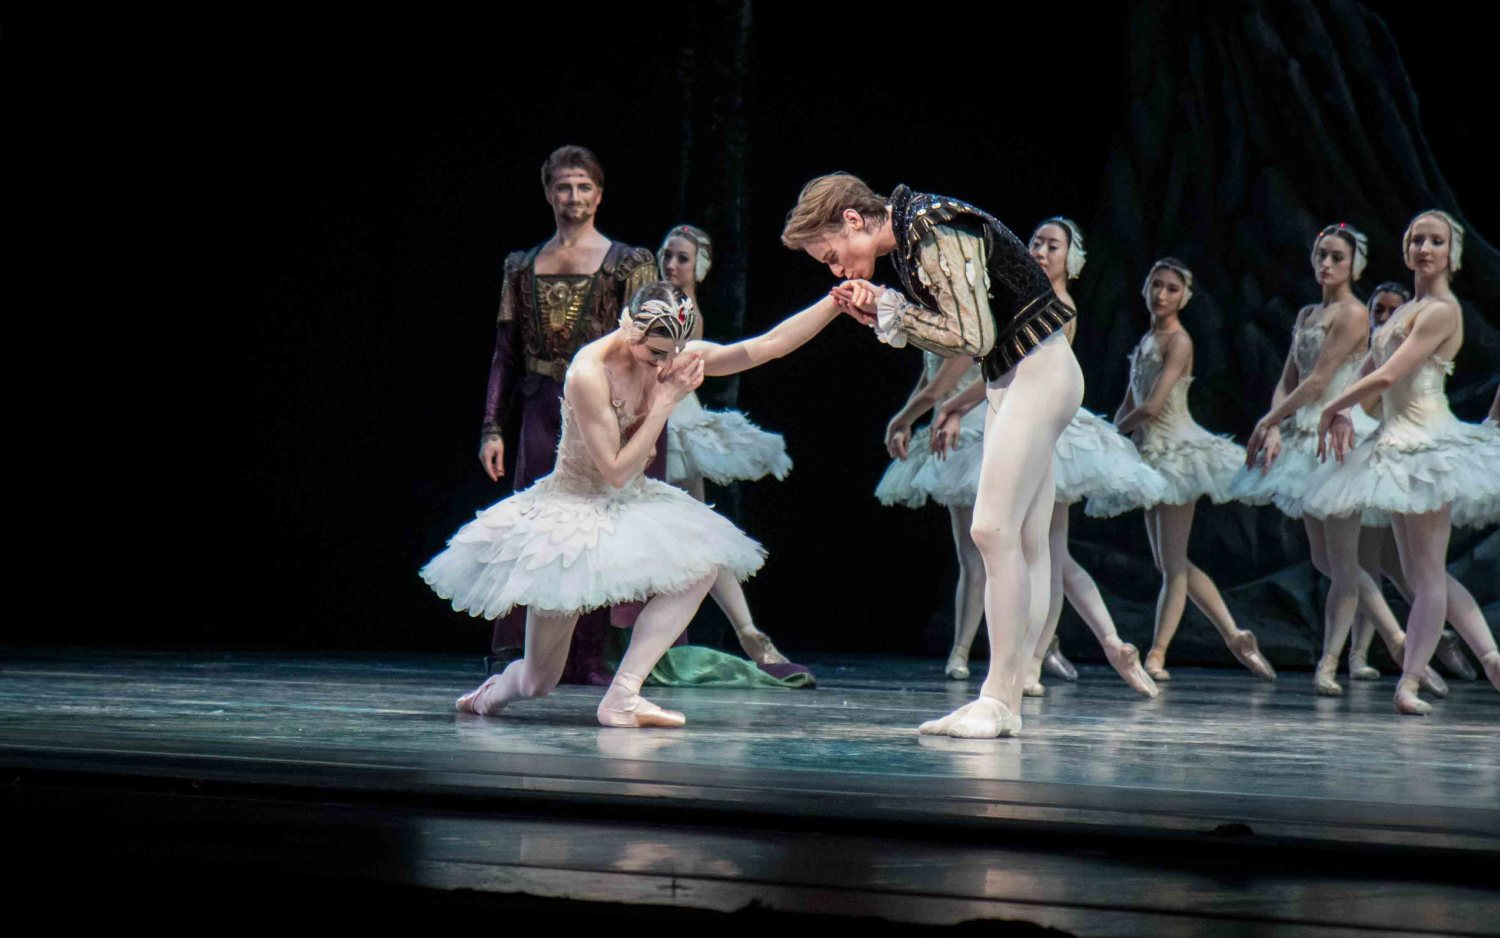 Sarah Lane ABT Swan Lake debut with Daniil Simkin